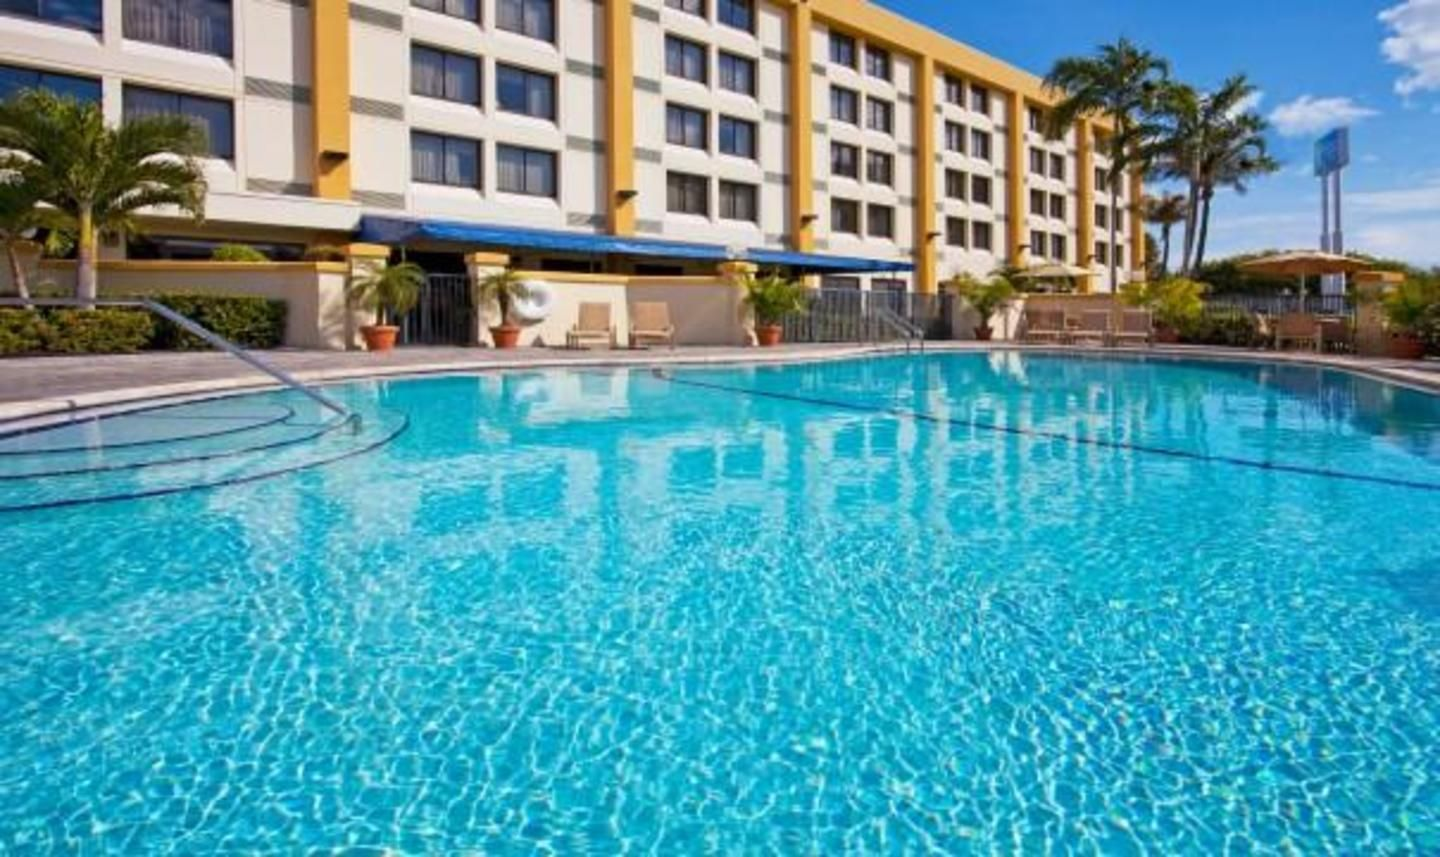 Holiday Inn Hialeah/Miami Lakes - swimming pool